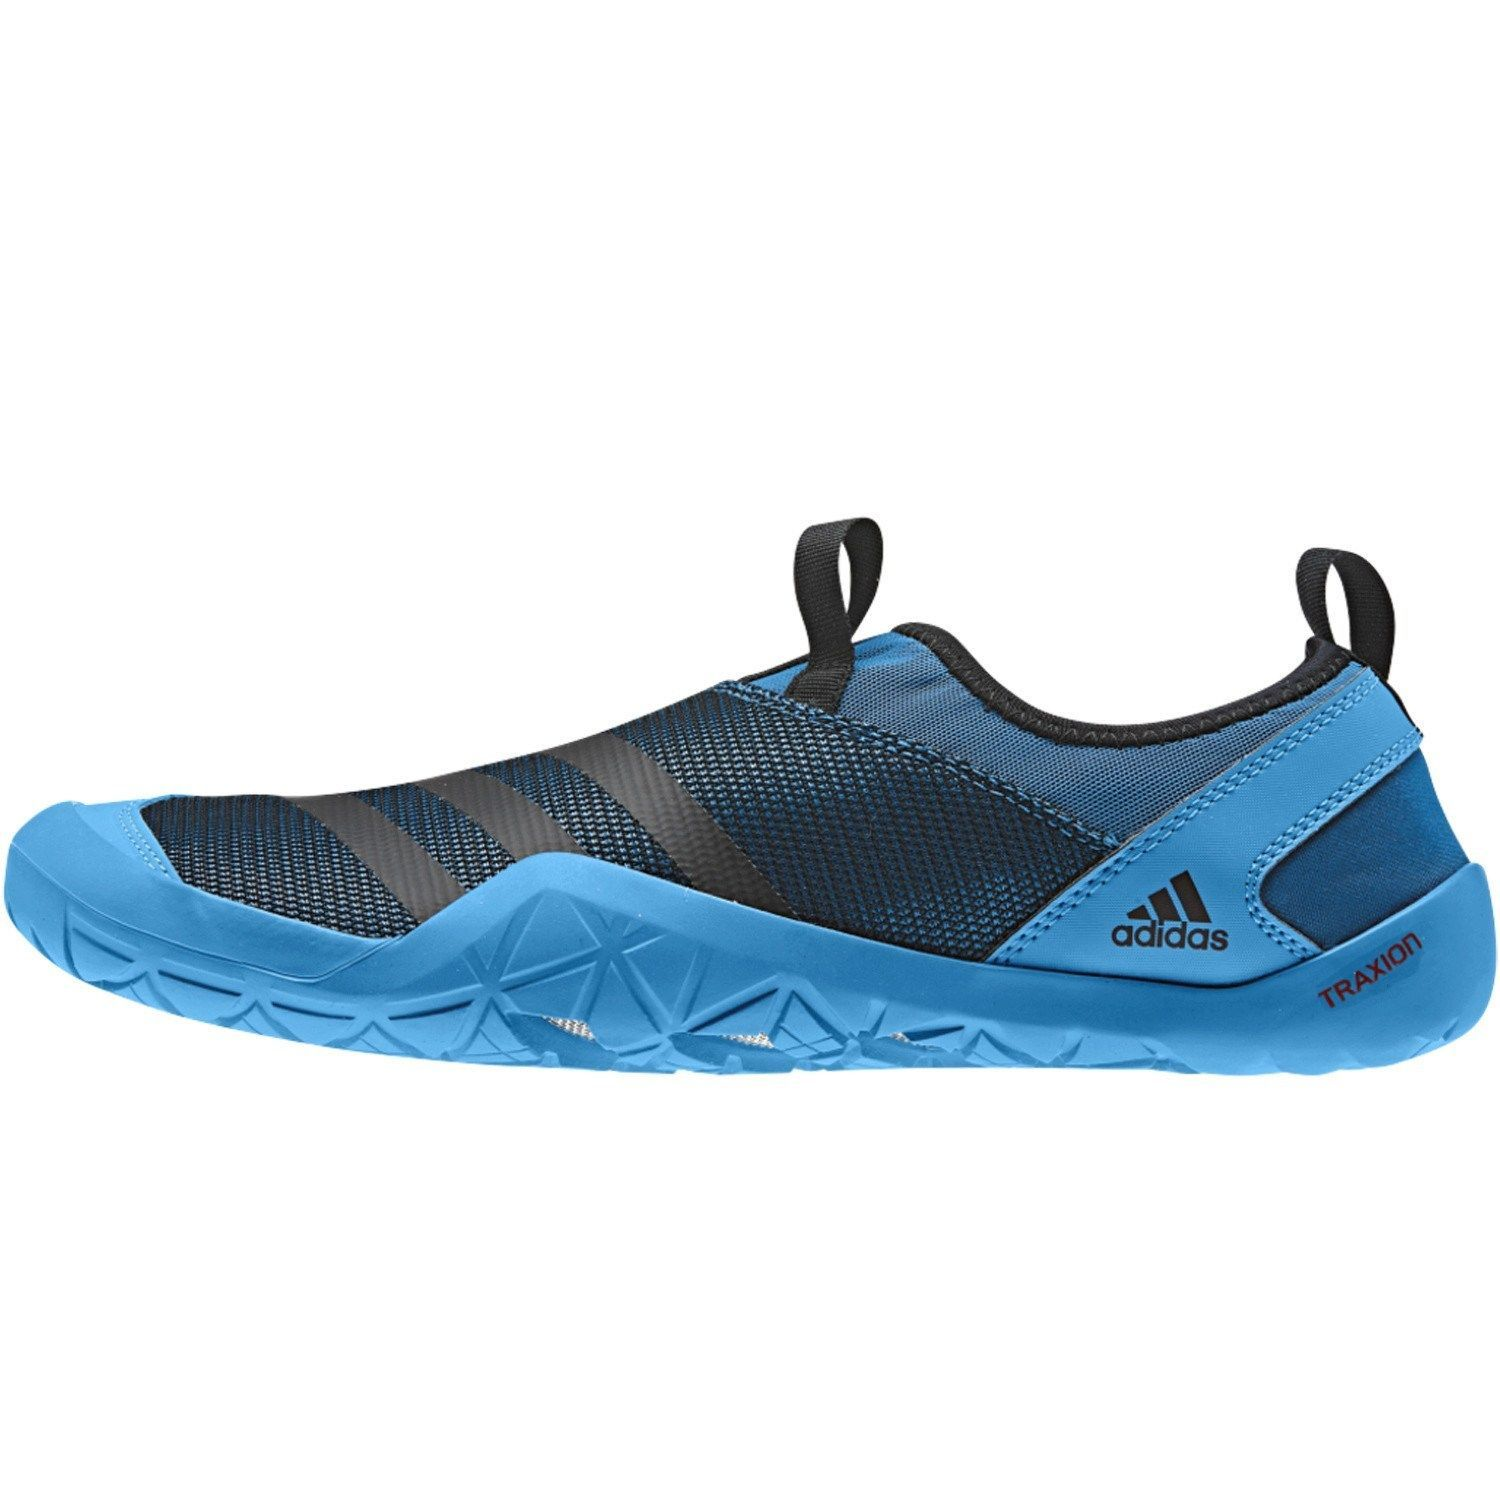 new products 467be c3509 adidas Performance Mens Climacool JawPaw Slip-On Shoe